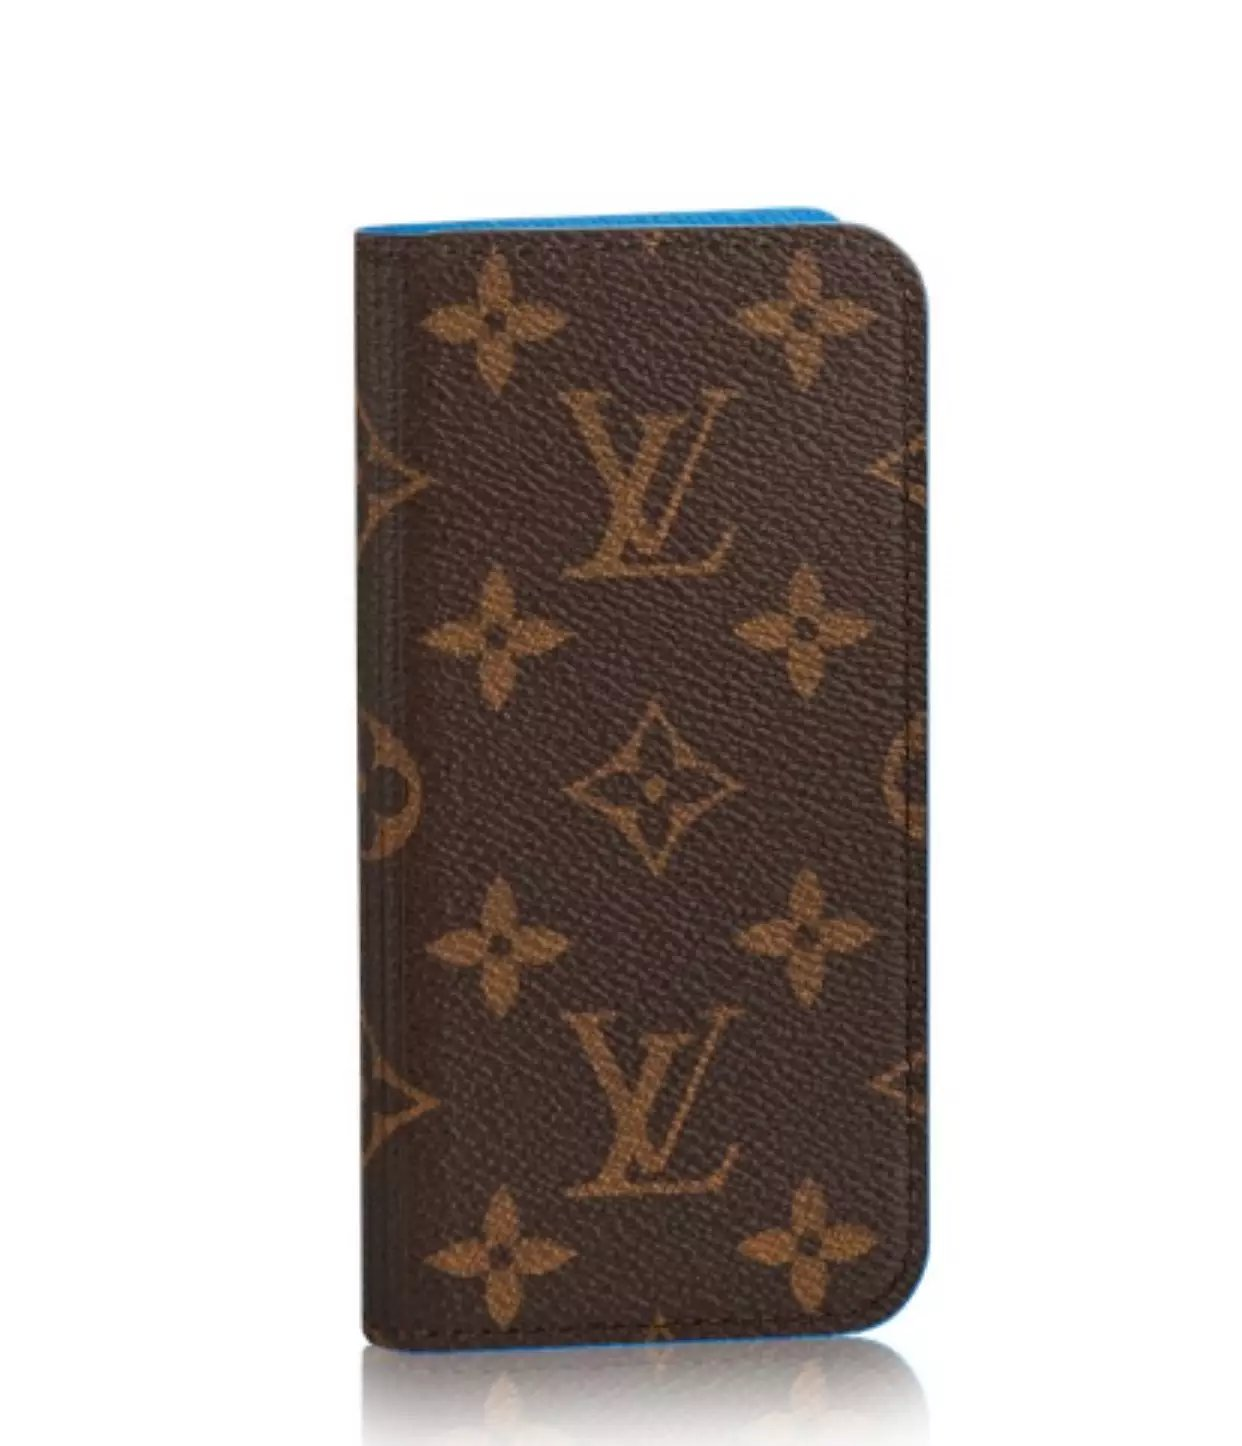 iphone hülle individuell die besten iphone hüllen Louis Vuitton iphone6 plus hülle iphone 6 Plus hülle gestalten witzige iphone hüllen schutztasche iphone 6 Plus handy cover leder coole hüllen für iphone 6 Plus durchsichtige handyhülle iphone 6 Plus